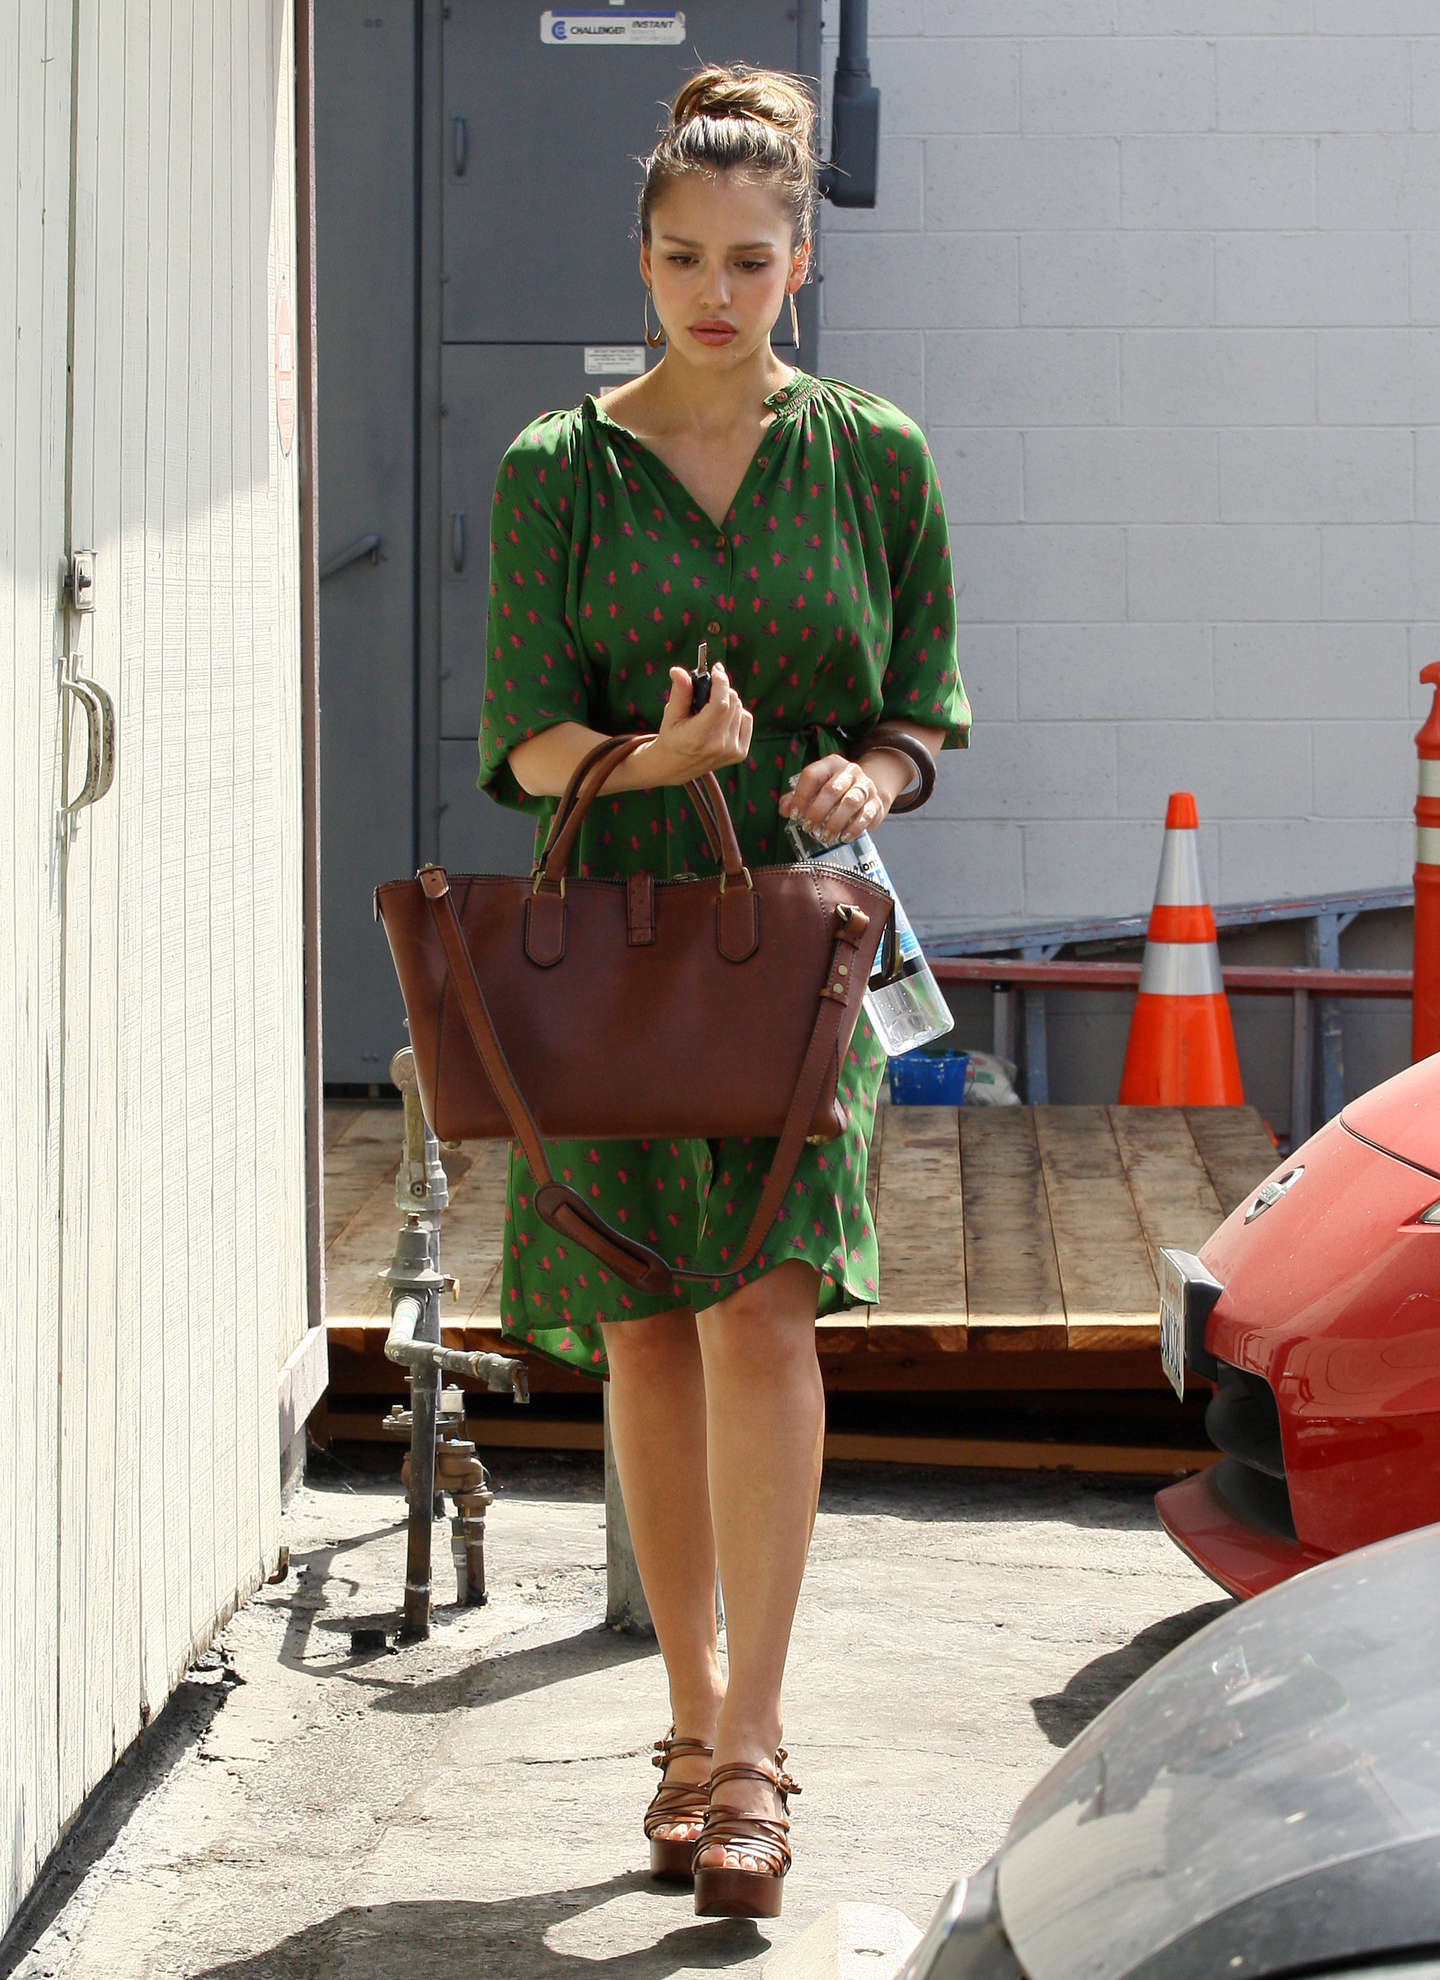 http://www.gotceleb.com/wp-content/uploads/celebrities/jessica-alba/green-dress-candids-at-studio-location-in-santa-monica-sept-29/Jessica%20Alba%20-%20Green%20Dress%20-11.jpg